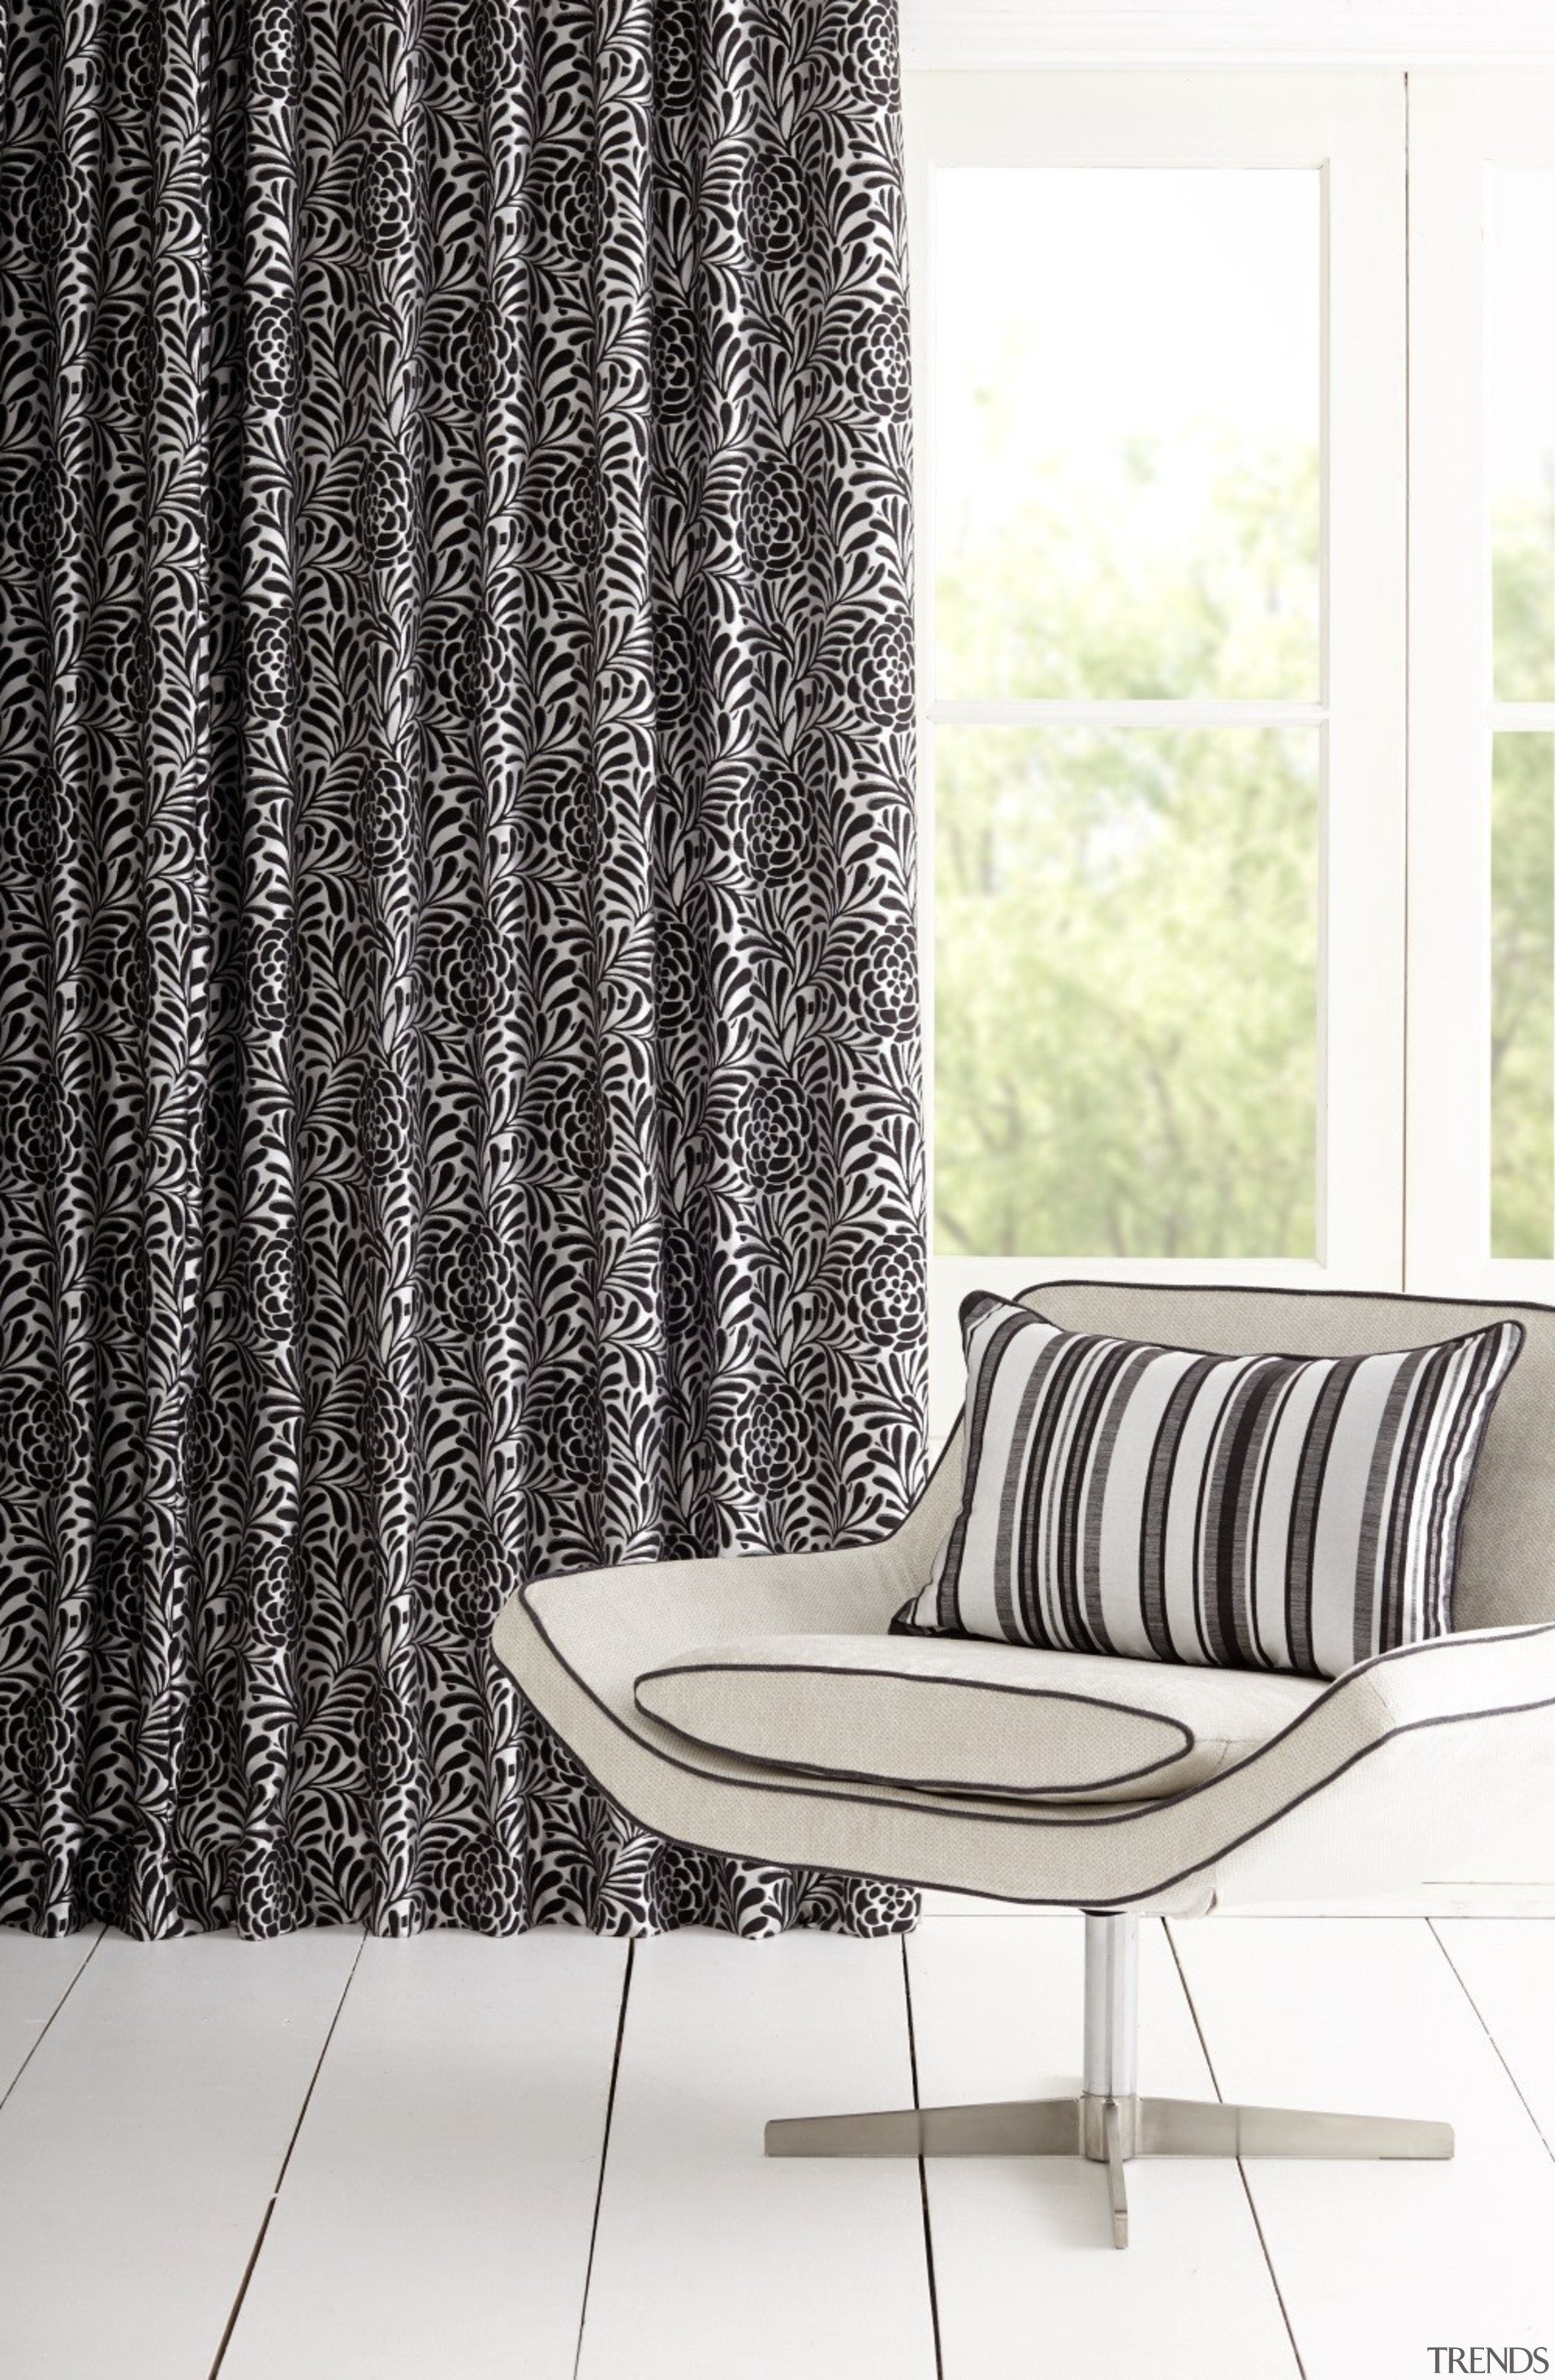 Harrisons Curtains - Harrisons Curtains - black and black and white, chair, curtain, furniture, interior design, product design, textile, window, window treatment, white, black